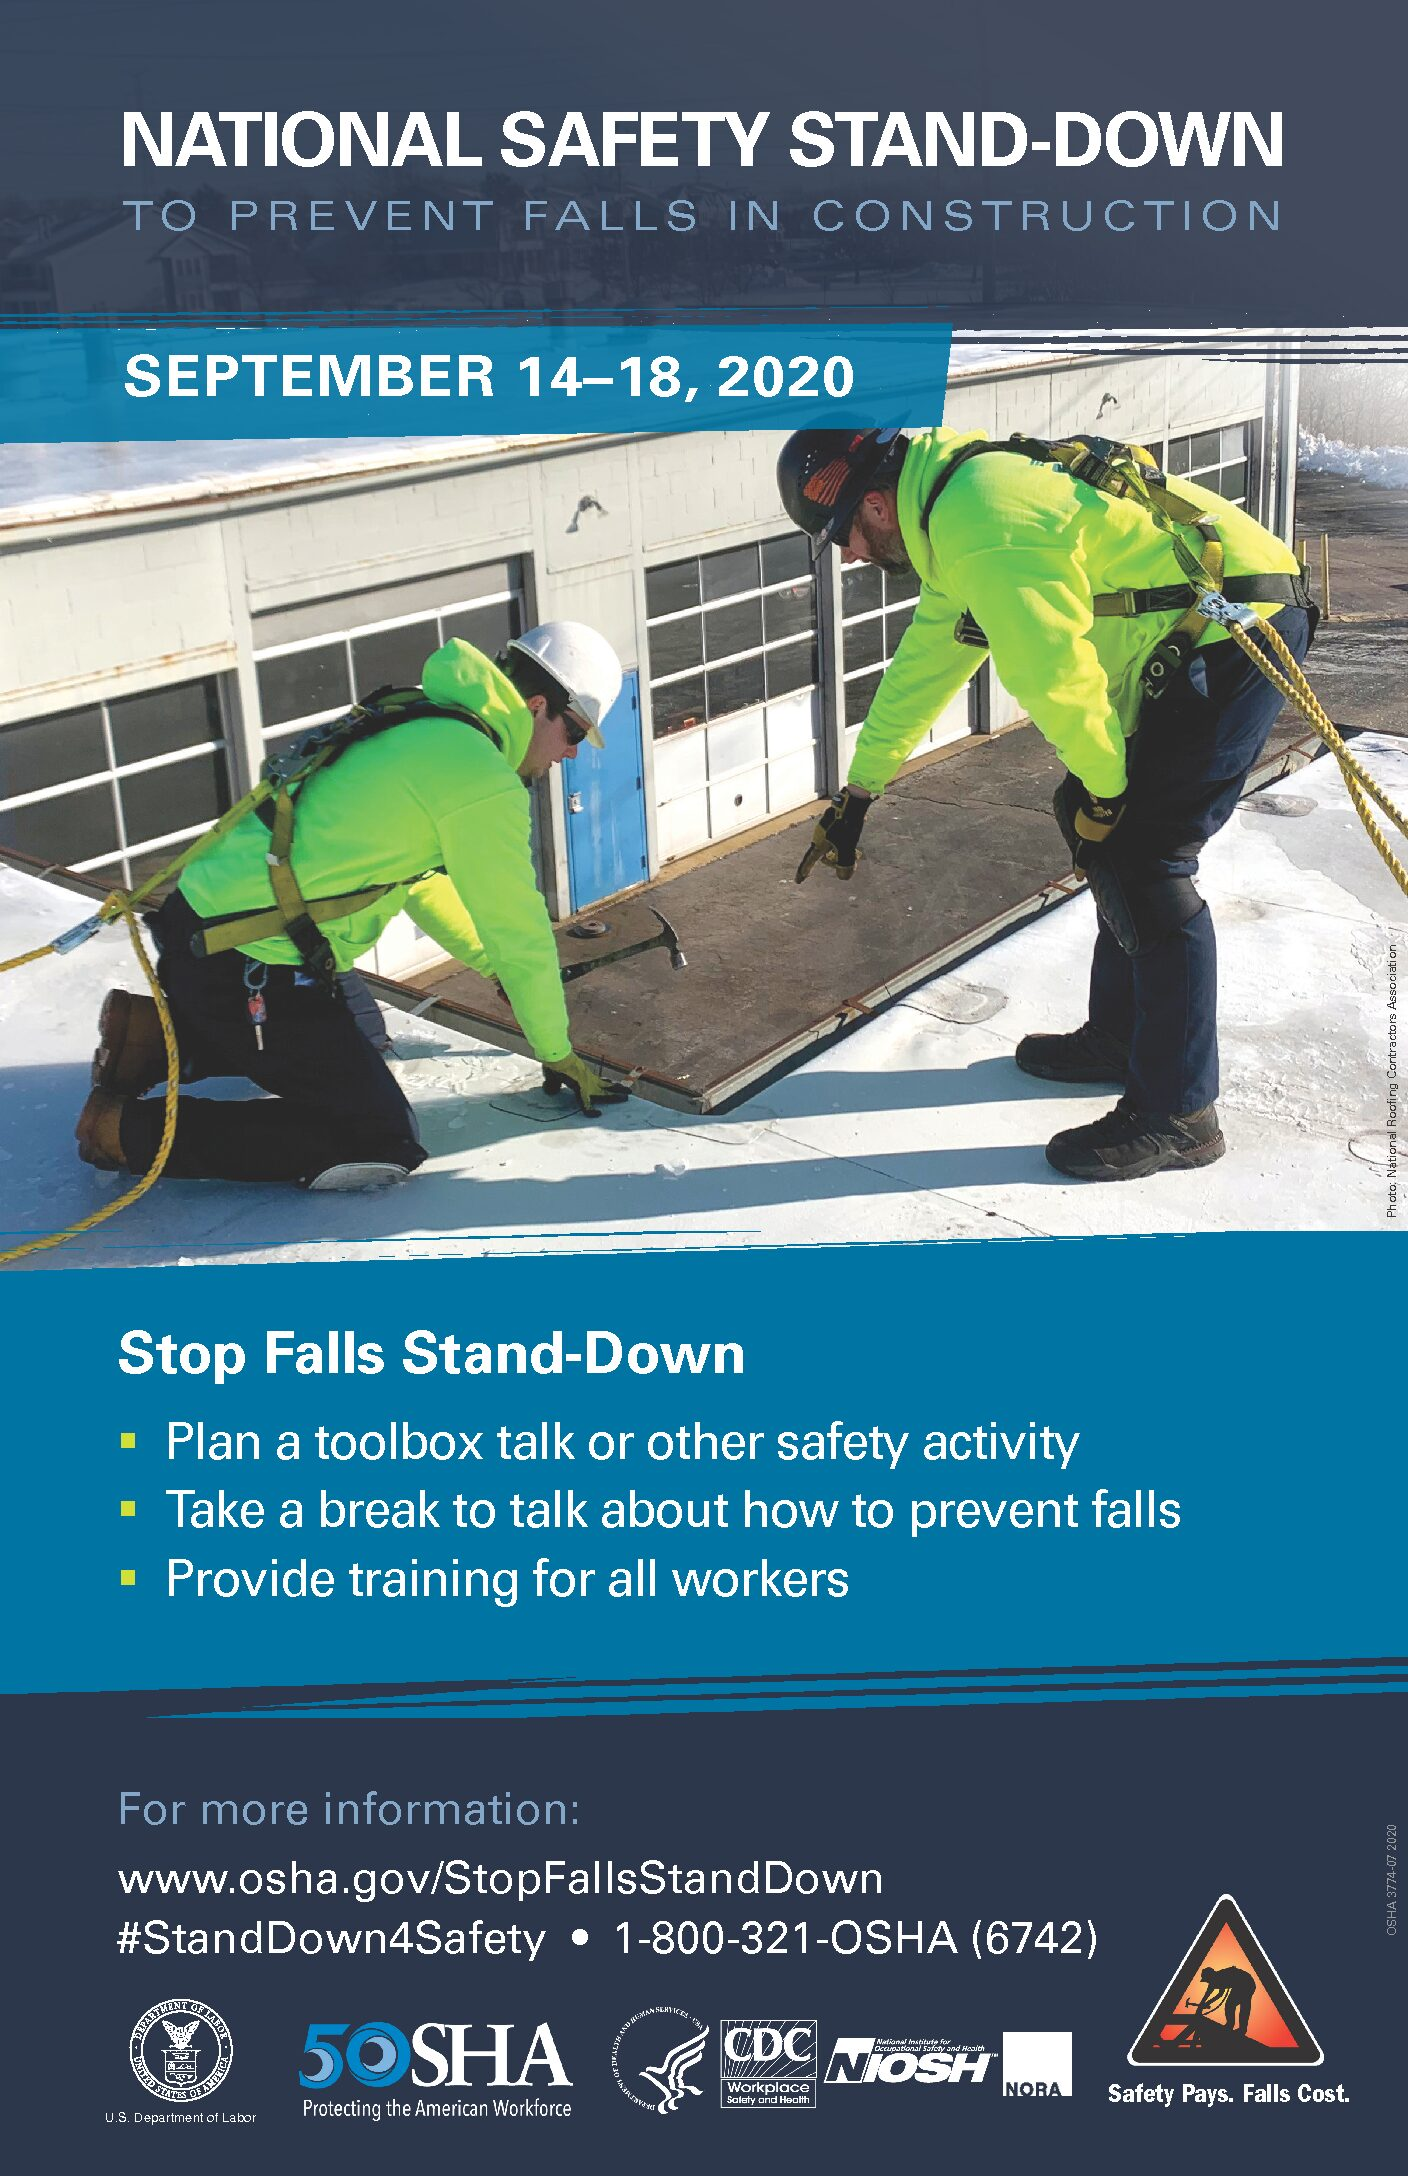 WeatherBuild Supports the National Safety Stand-Down to Prevent Falls in Construction